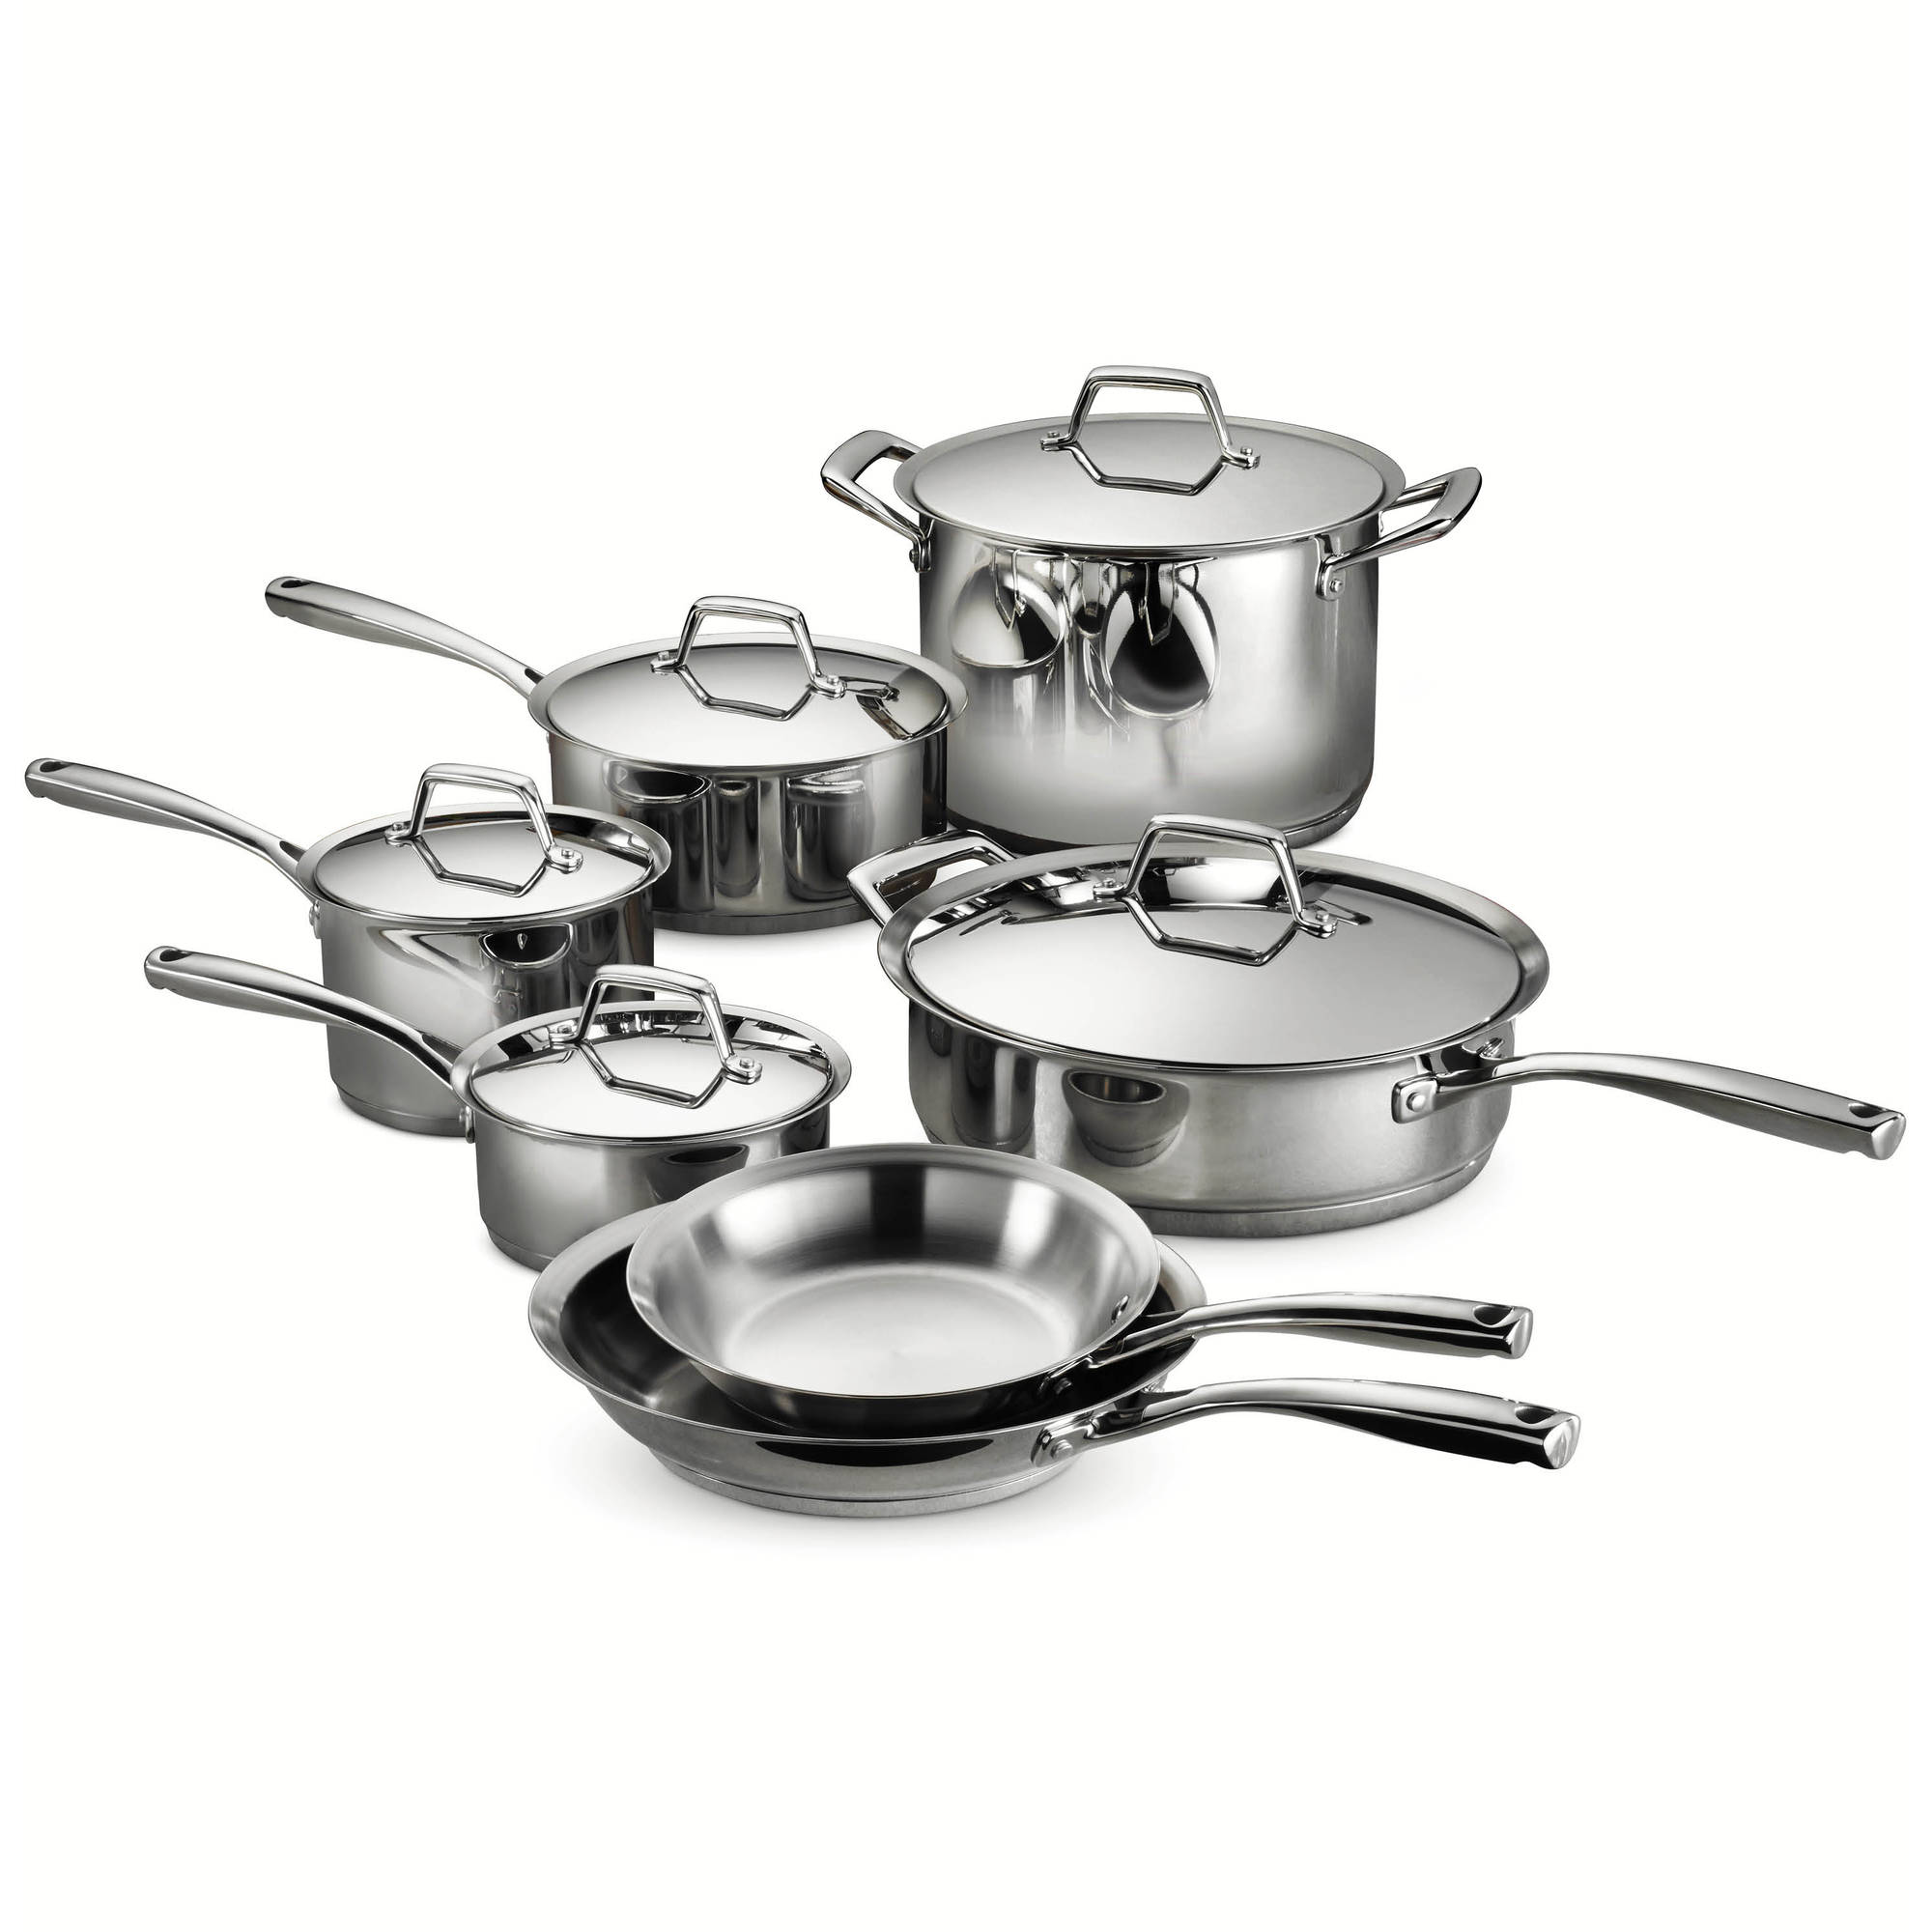 Tramontina Gourmet Prima 12-Piece Stainless Steel Cookware Set